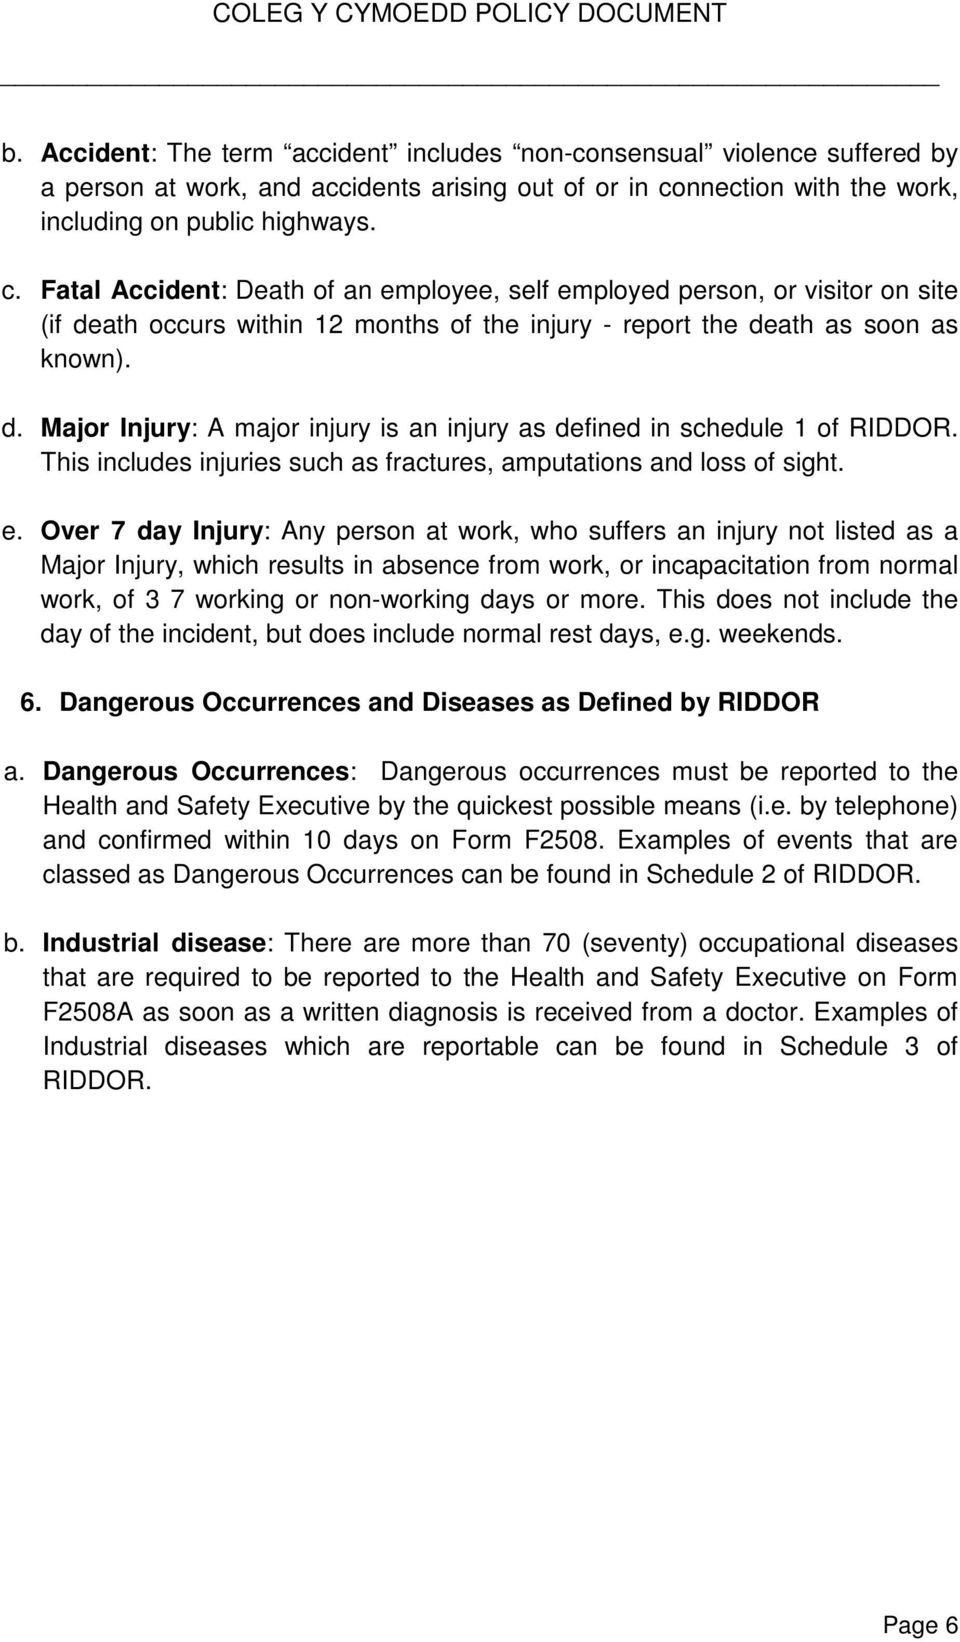 Fatal Accident: Death of an employee, self employed person, or visitor on site (if death occurs within 12 months of the injury - report the death as soon as known). d. Major Injury: A major injury is an injury as defined in schedule 1 of RIDDOR.